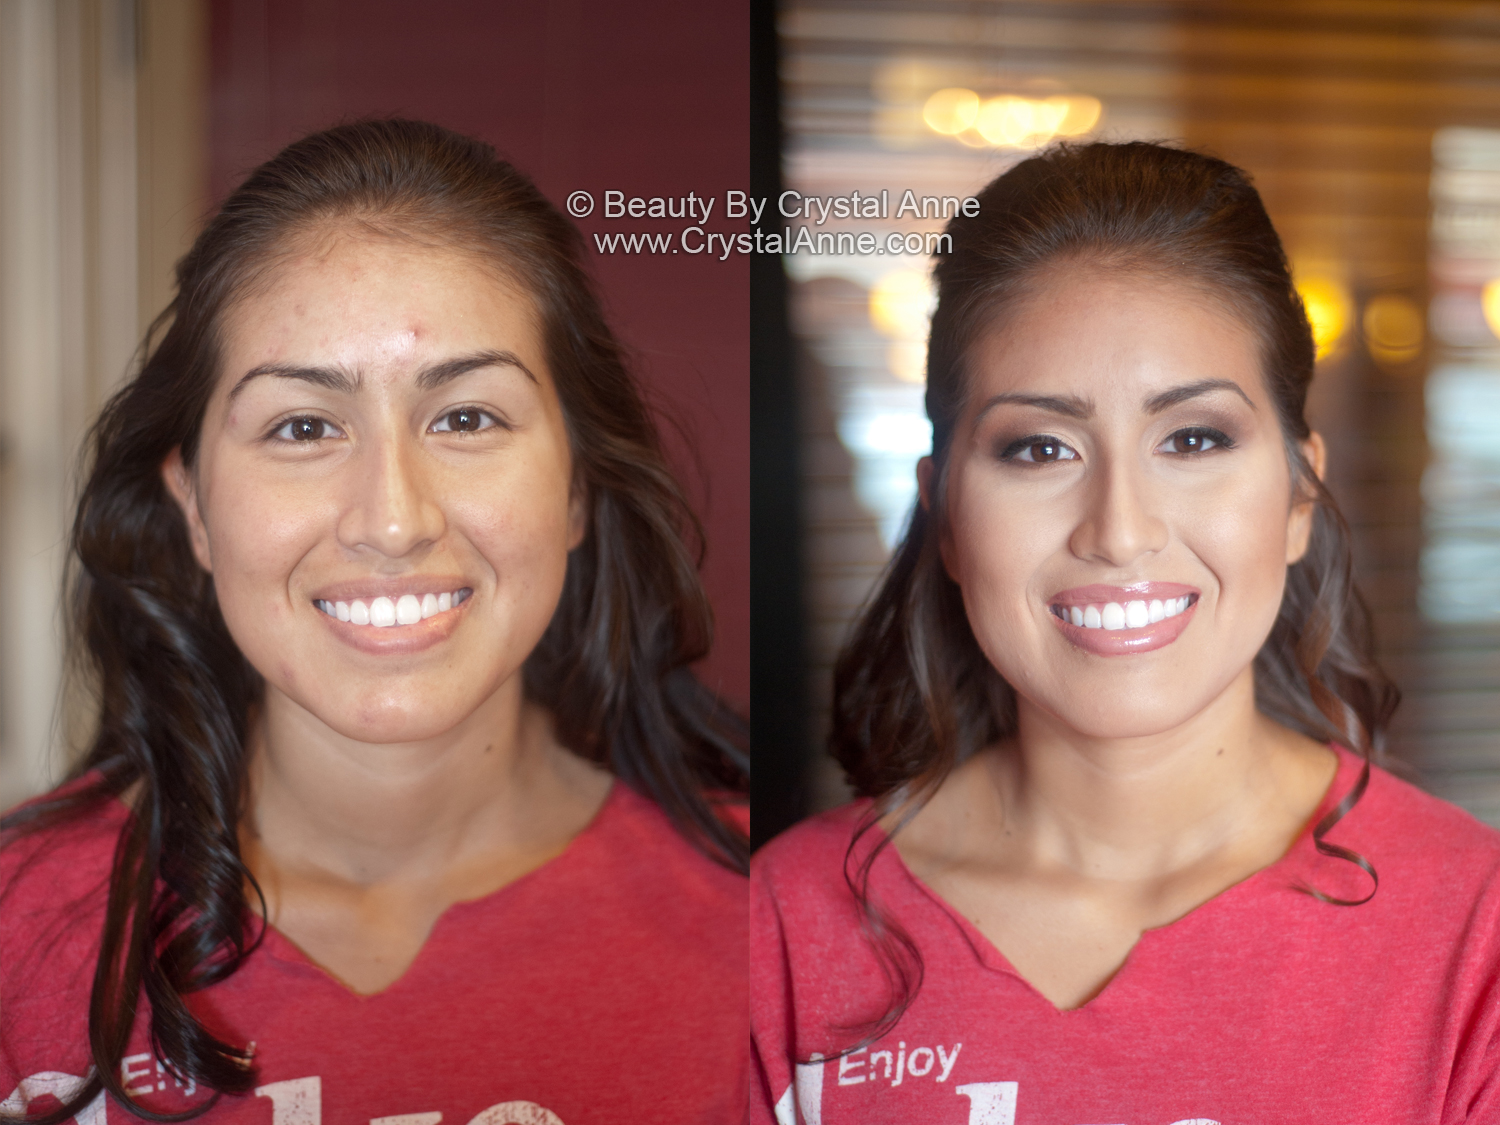 Hair And Makeup For Prom In Cypress Tx